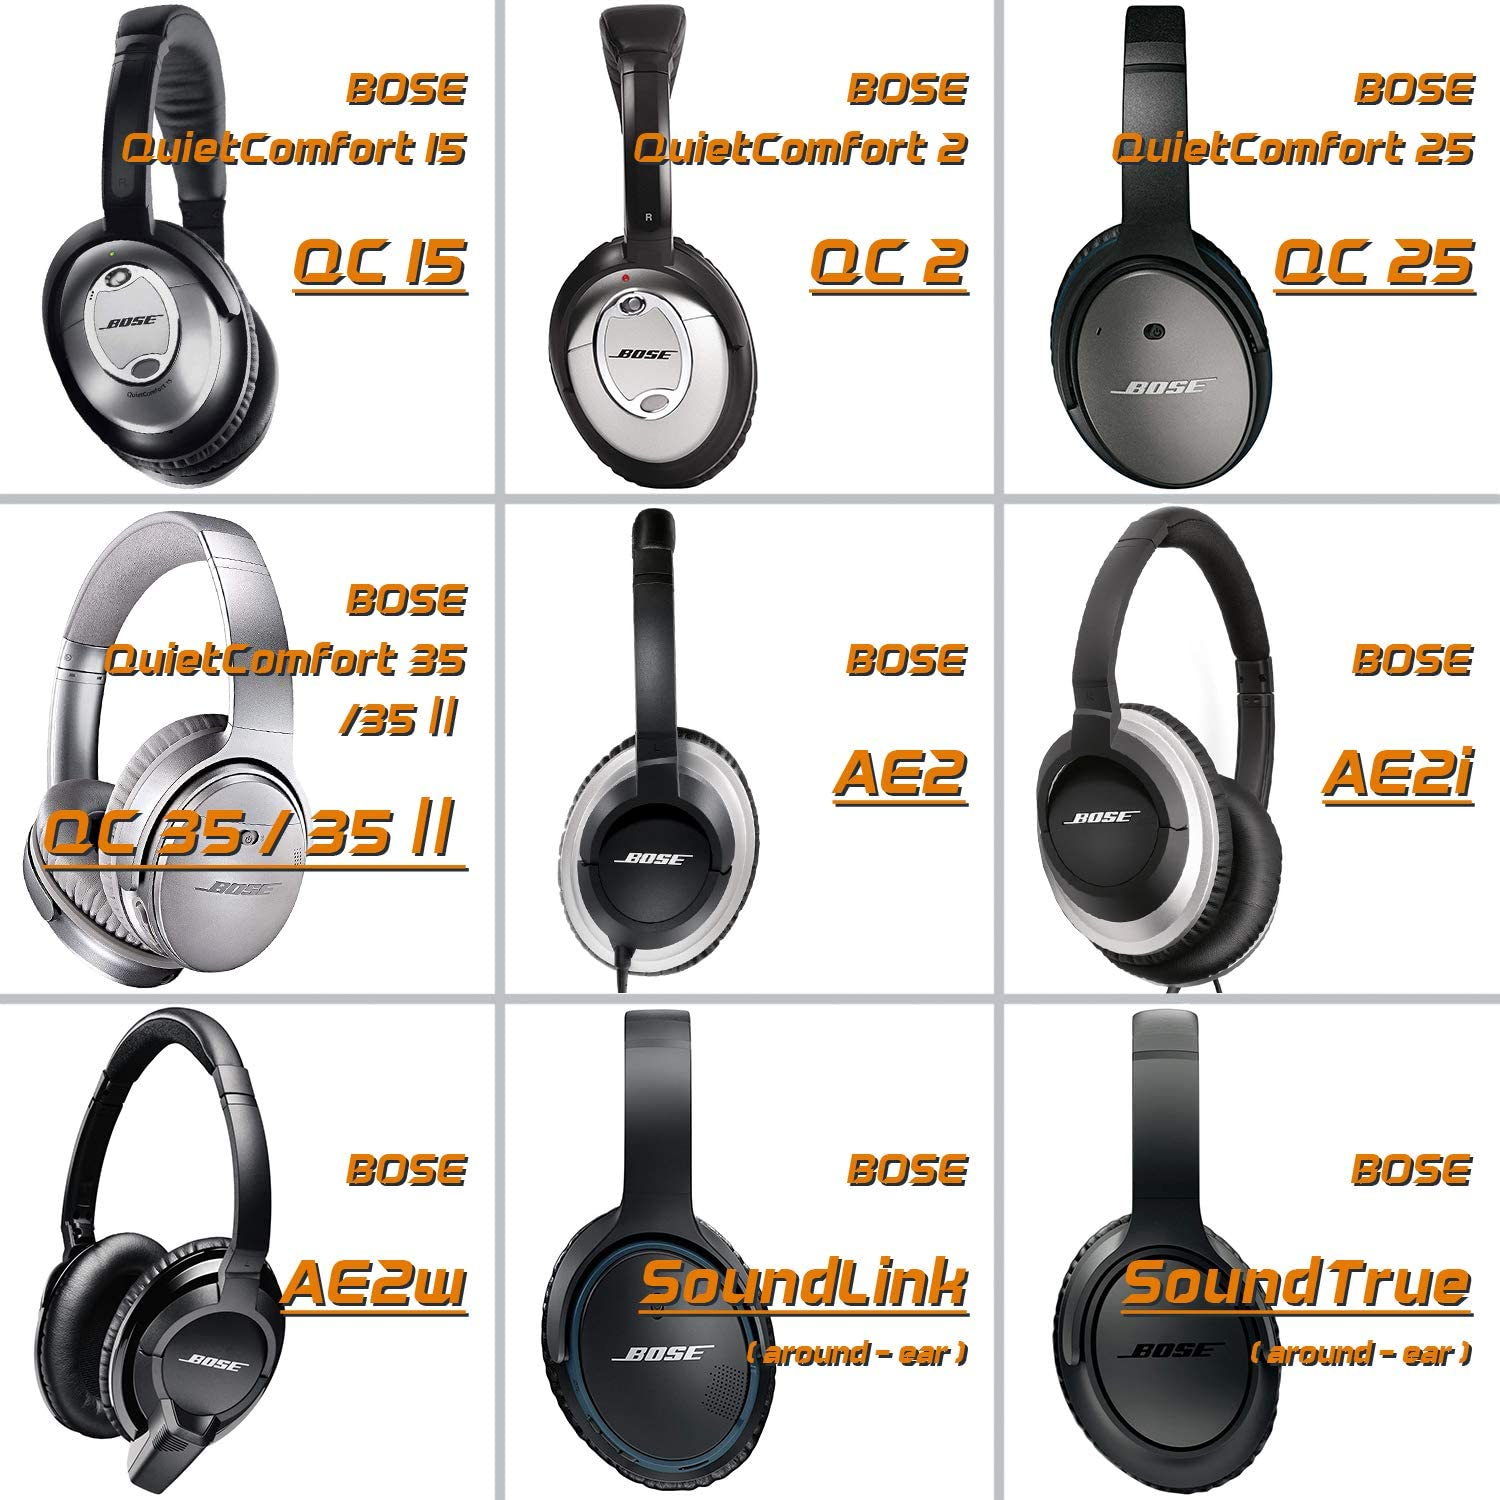 QC15 QC2 SoundTrue//SoundLink AE2 Compatible with QuietComfort 15 QC35 AE2w QC25 AE2i QC35Ⅱ Ear Pads Replacement Cushion for Bose Headphones